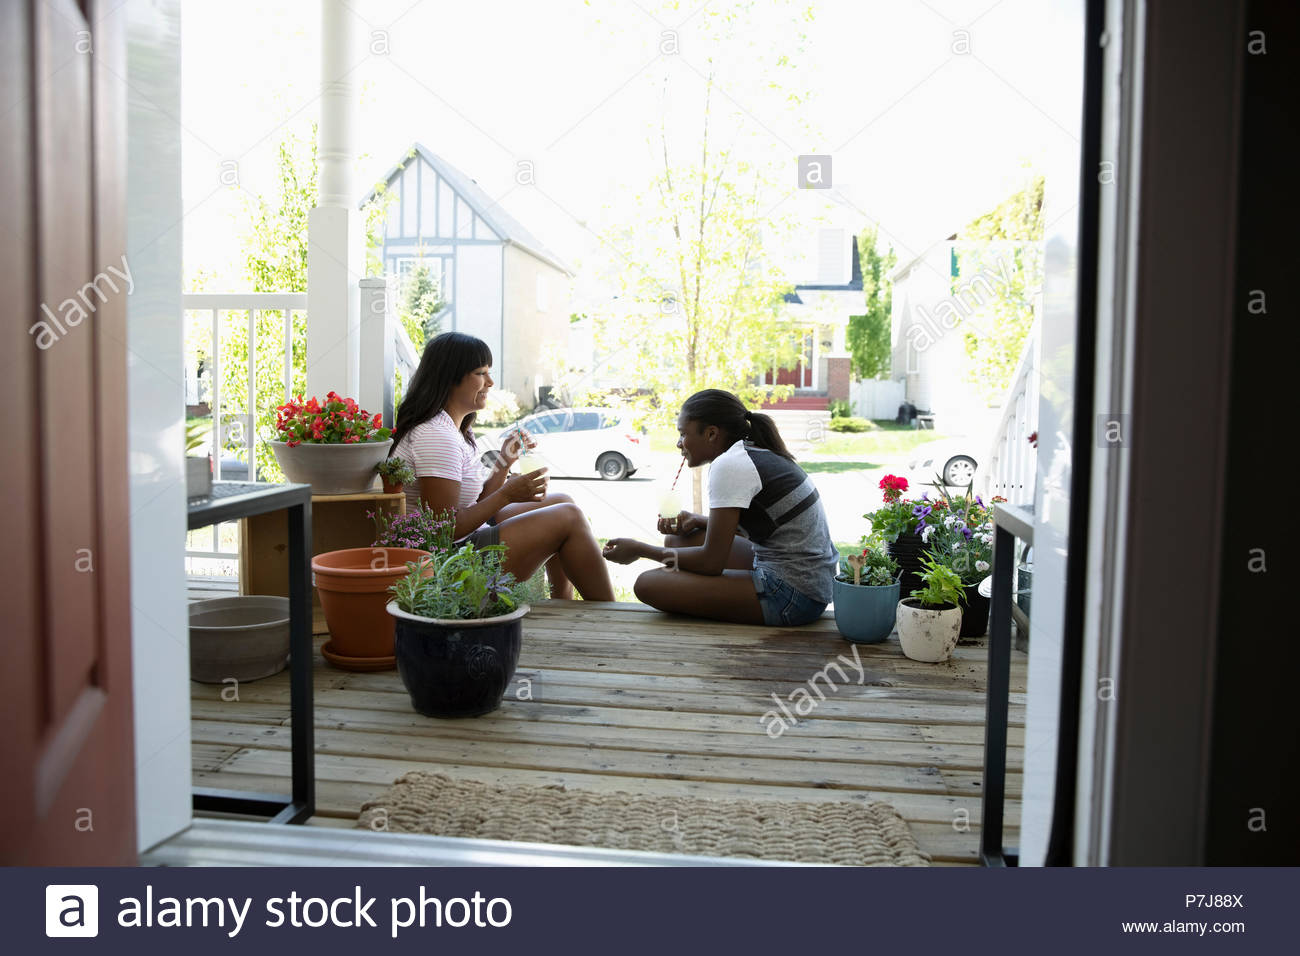 Mother and daughter bonding, talking and planting flowers on front stoop - Stock Image